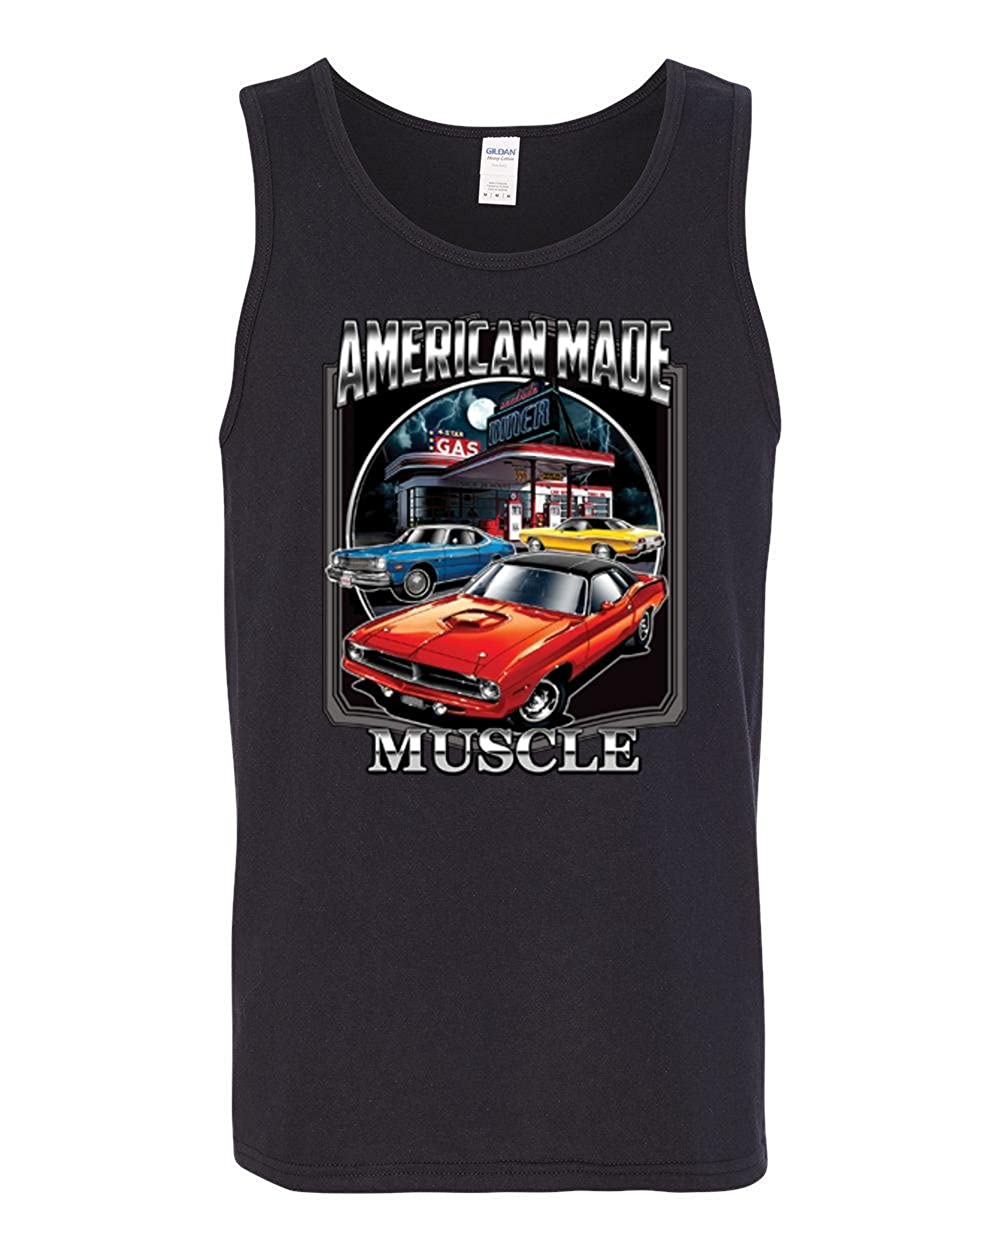 Wild Bobby American Made Muscle Mens Planes//Trains//Automobiles Fashion Graphic Tank Top